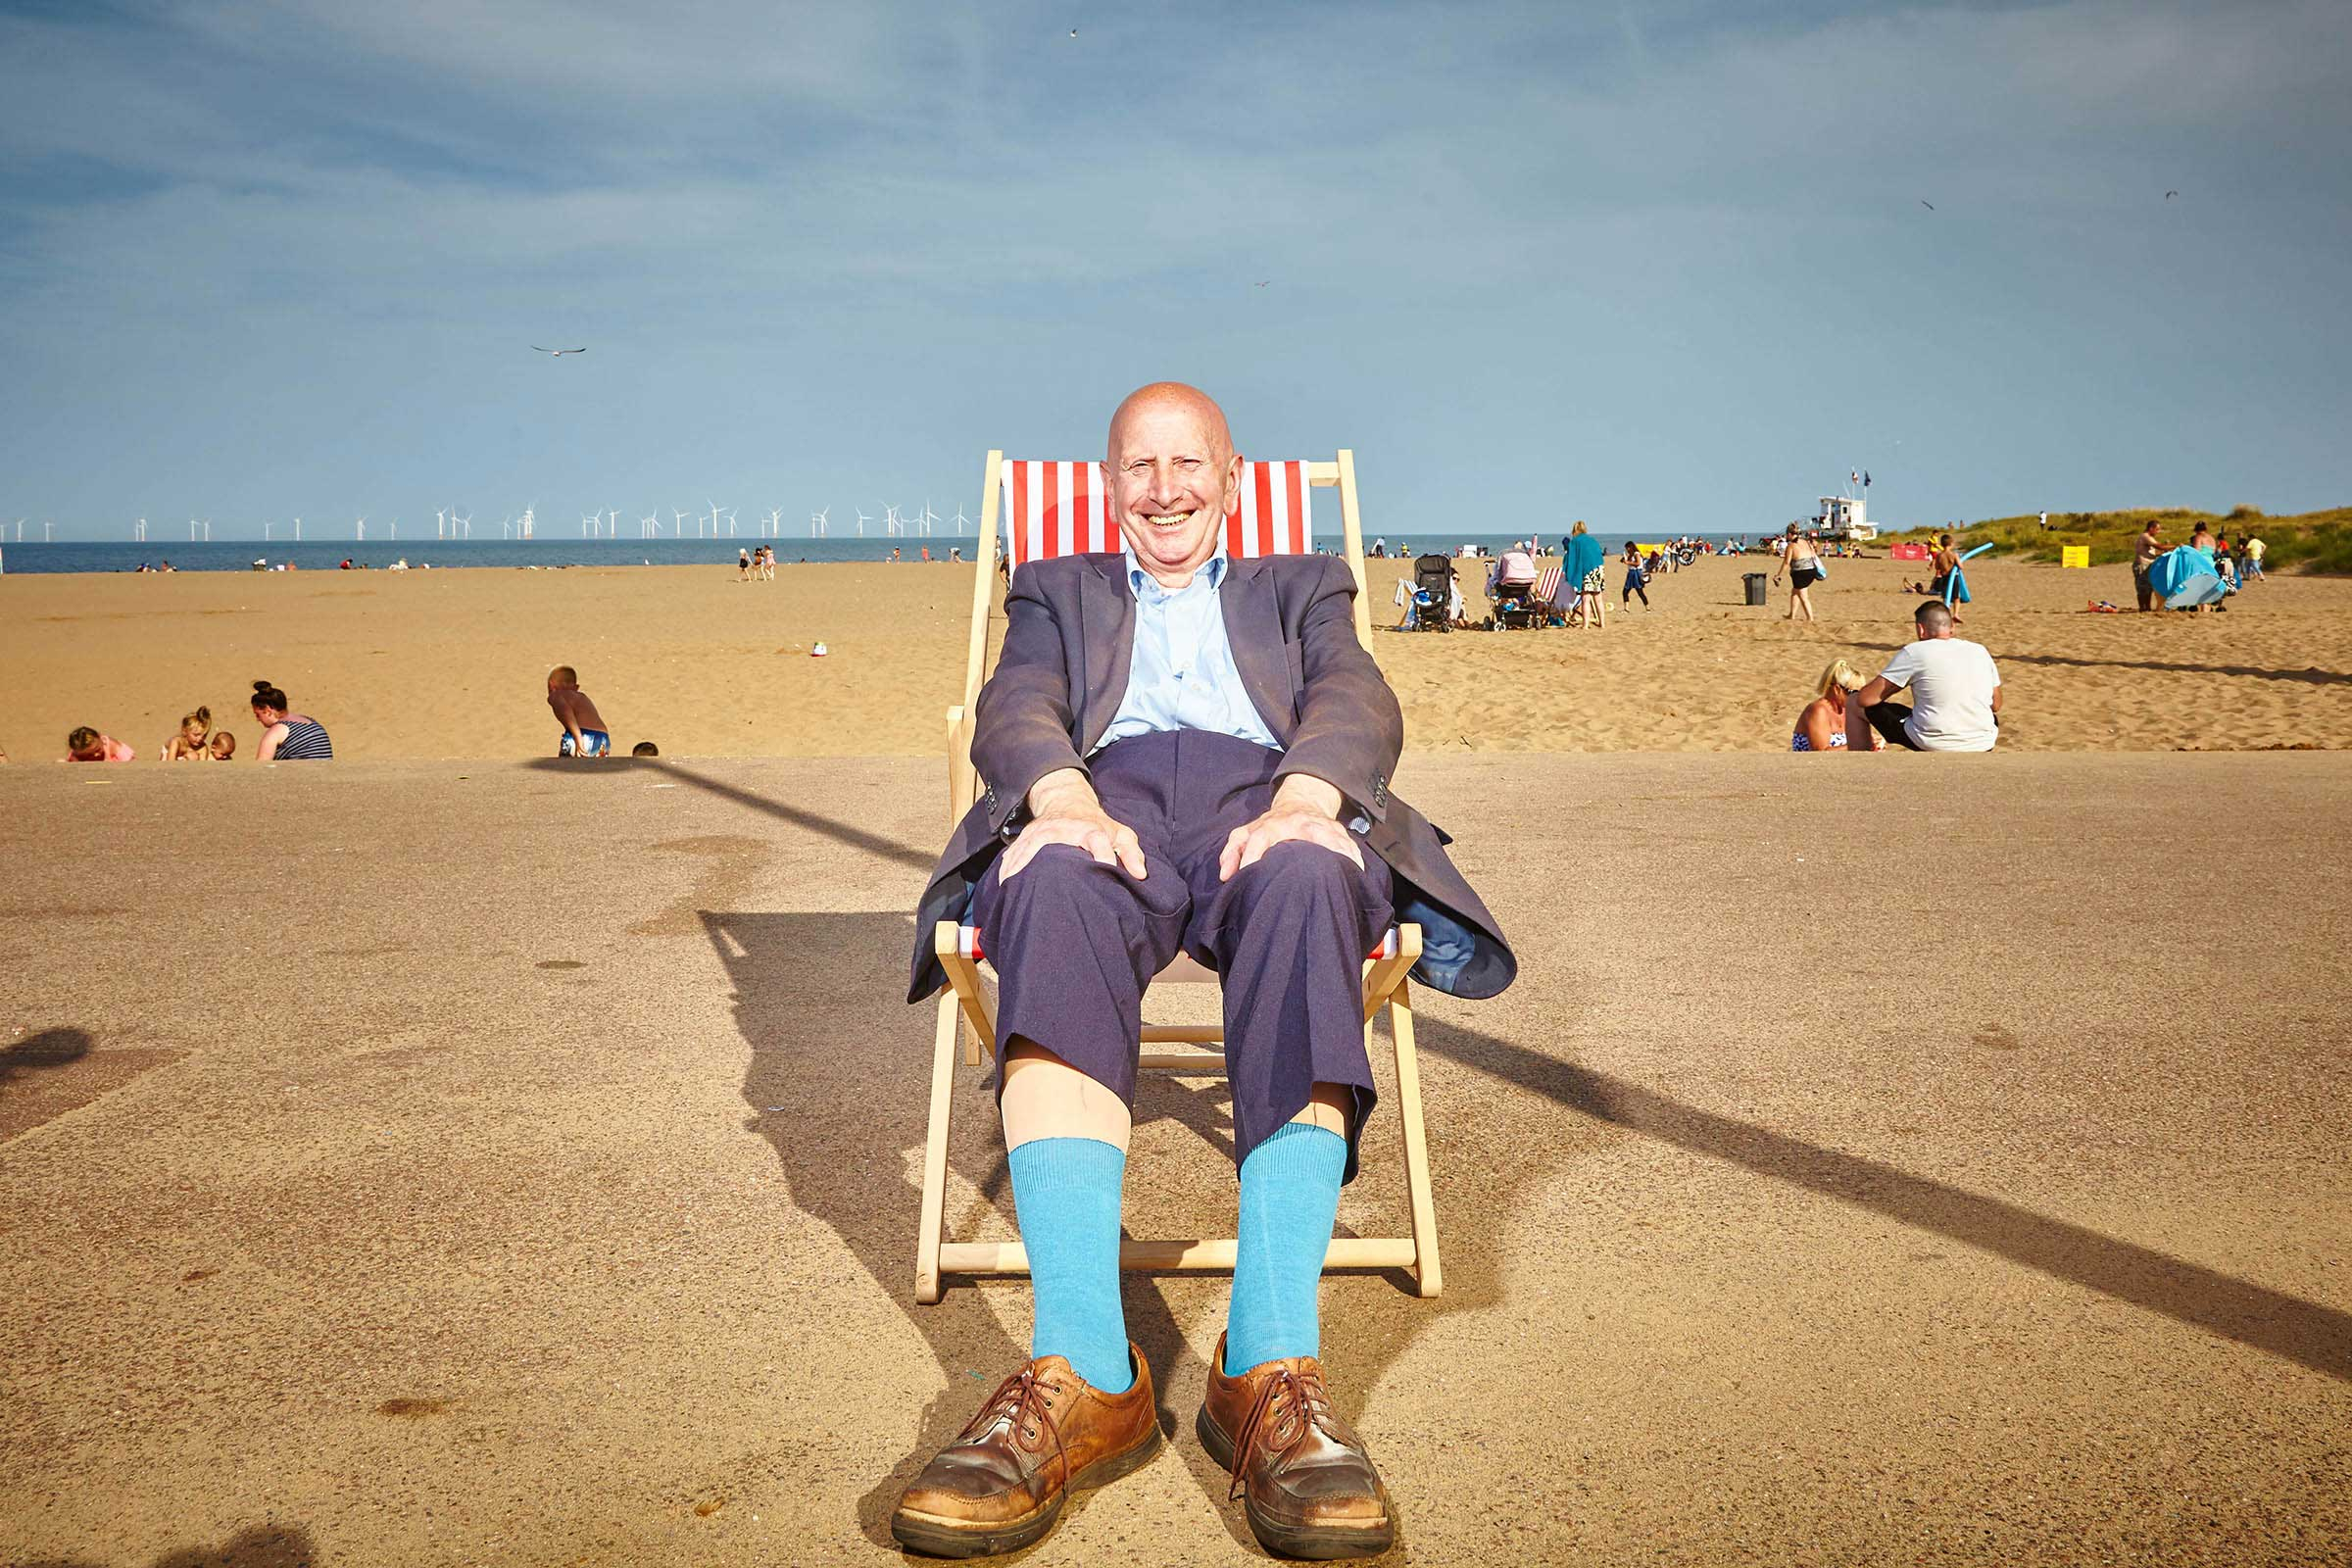 Quirky Folk on a Sunny Day at the British Seaside